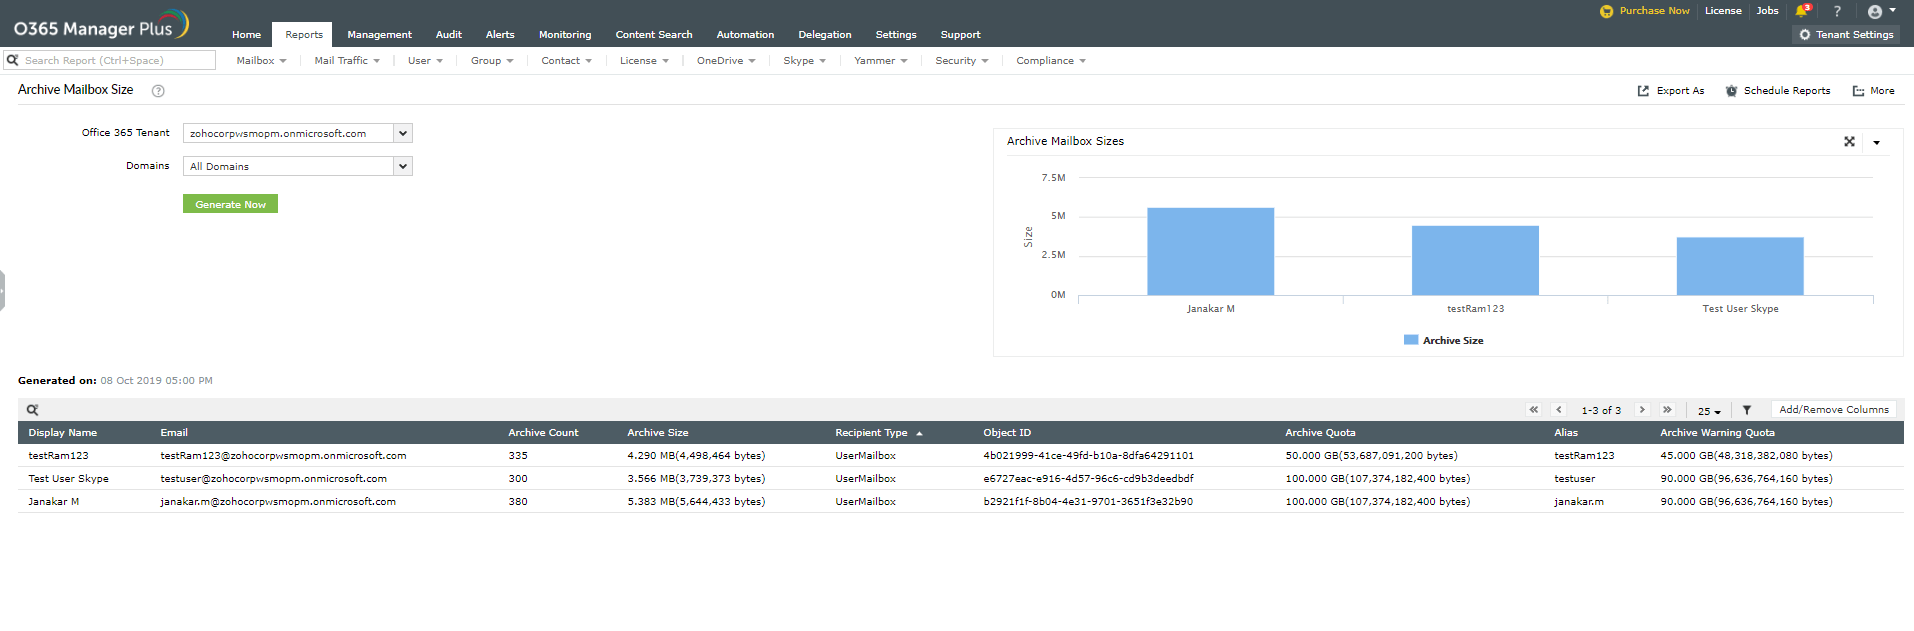 Office 365 Archive Mailbox Size Report